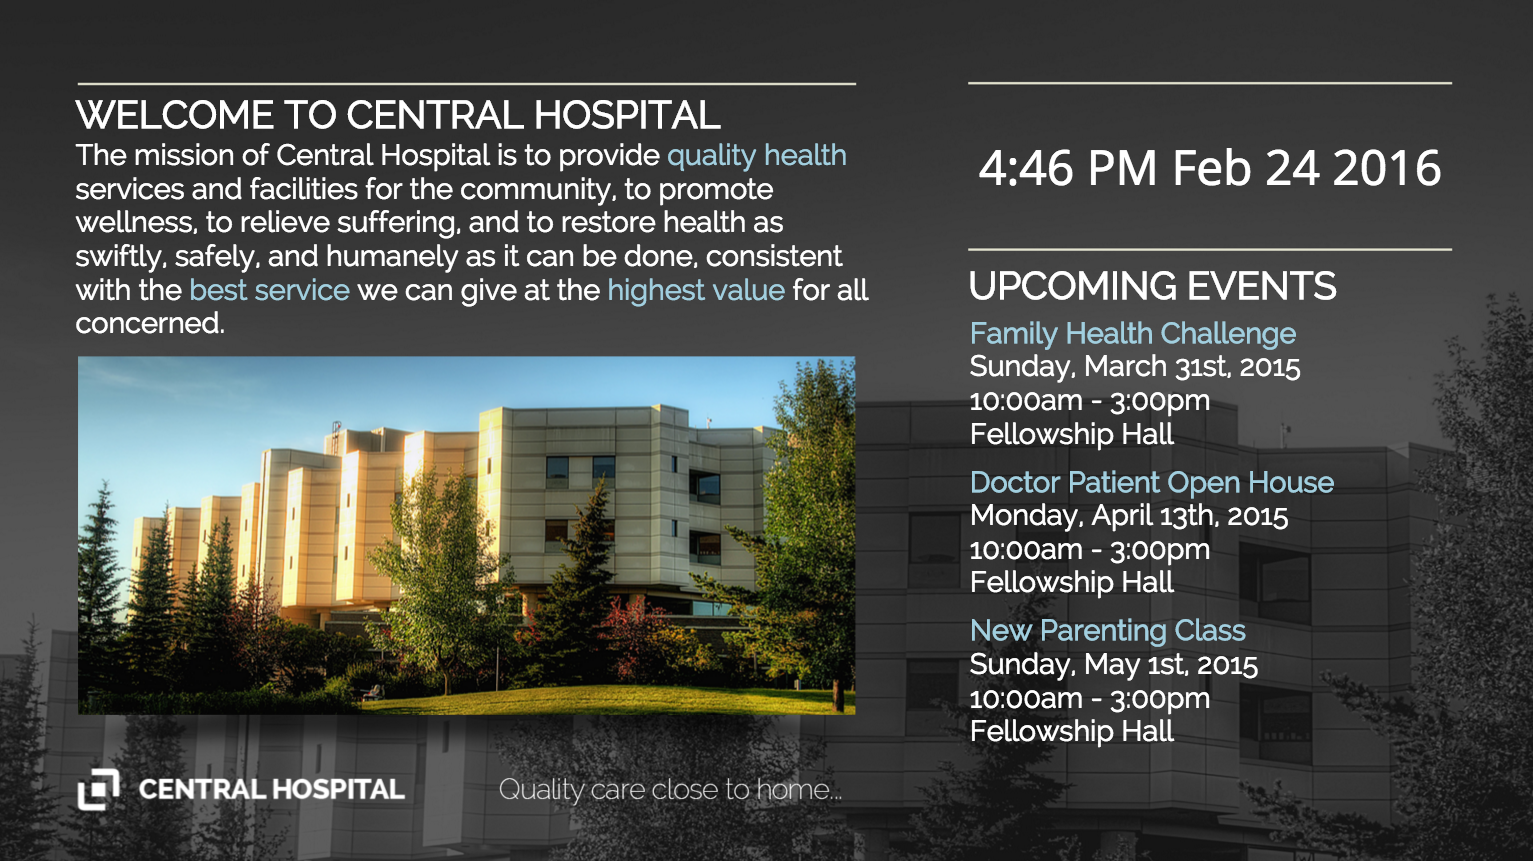 Hospital Events